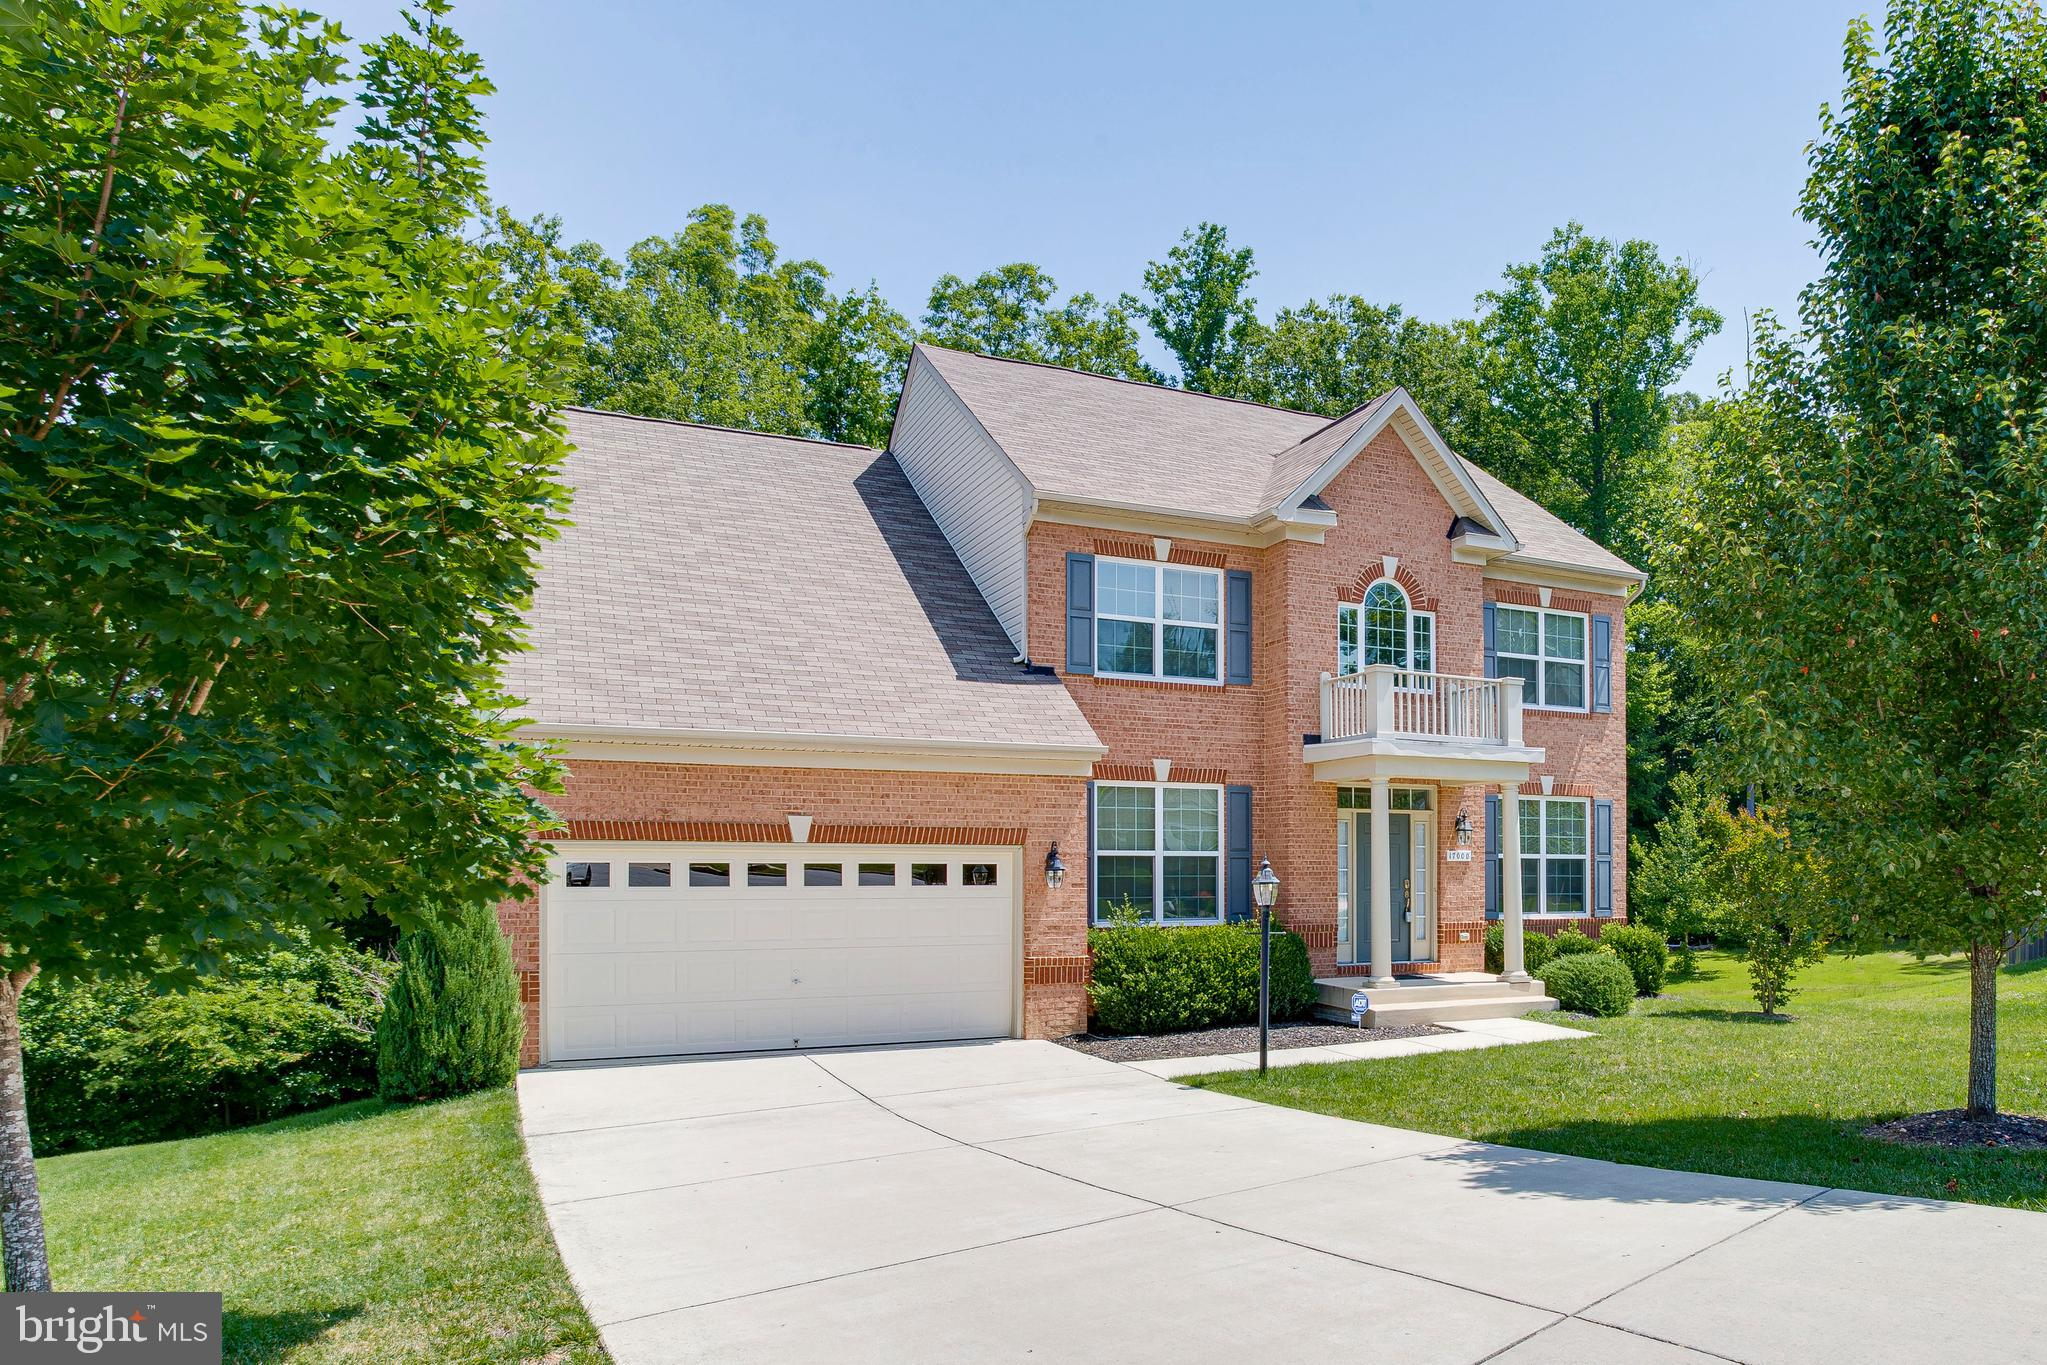 17000 MADRILLON WAY, ACCOKEEK, MD 20607